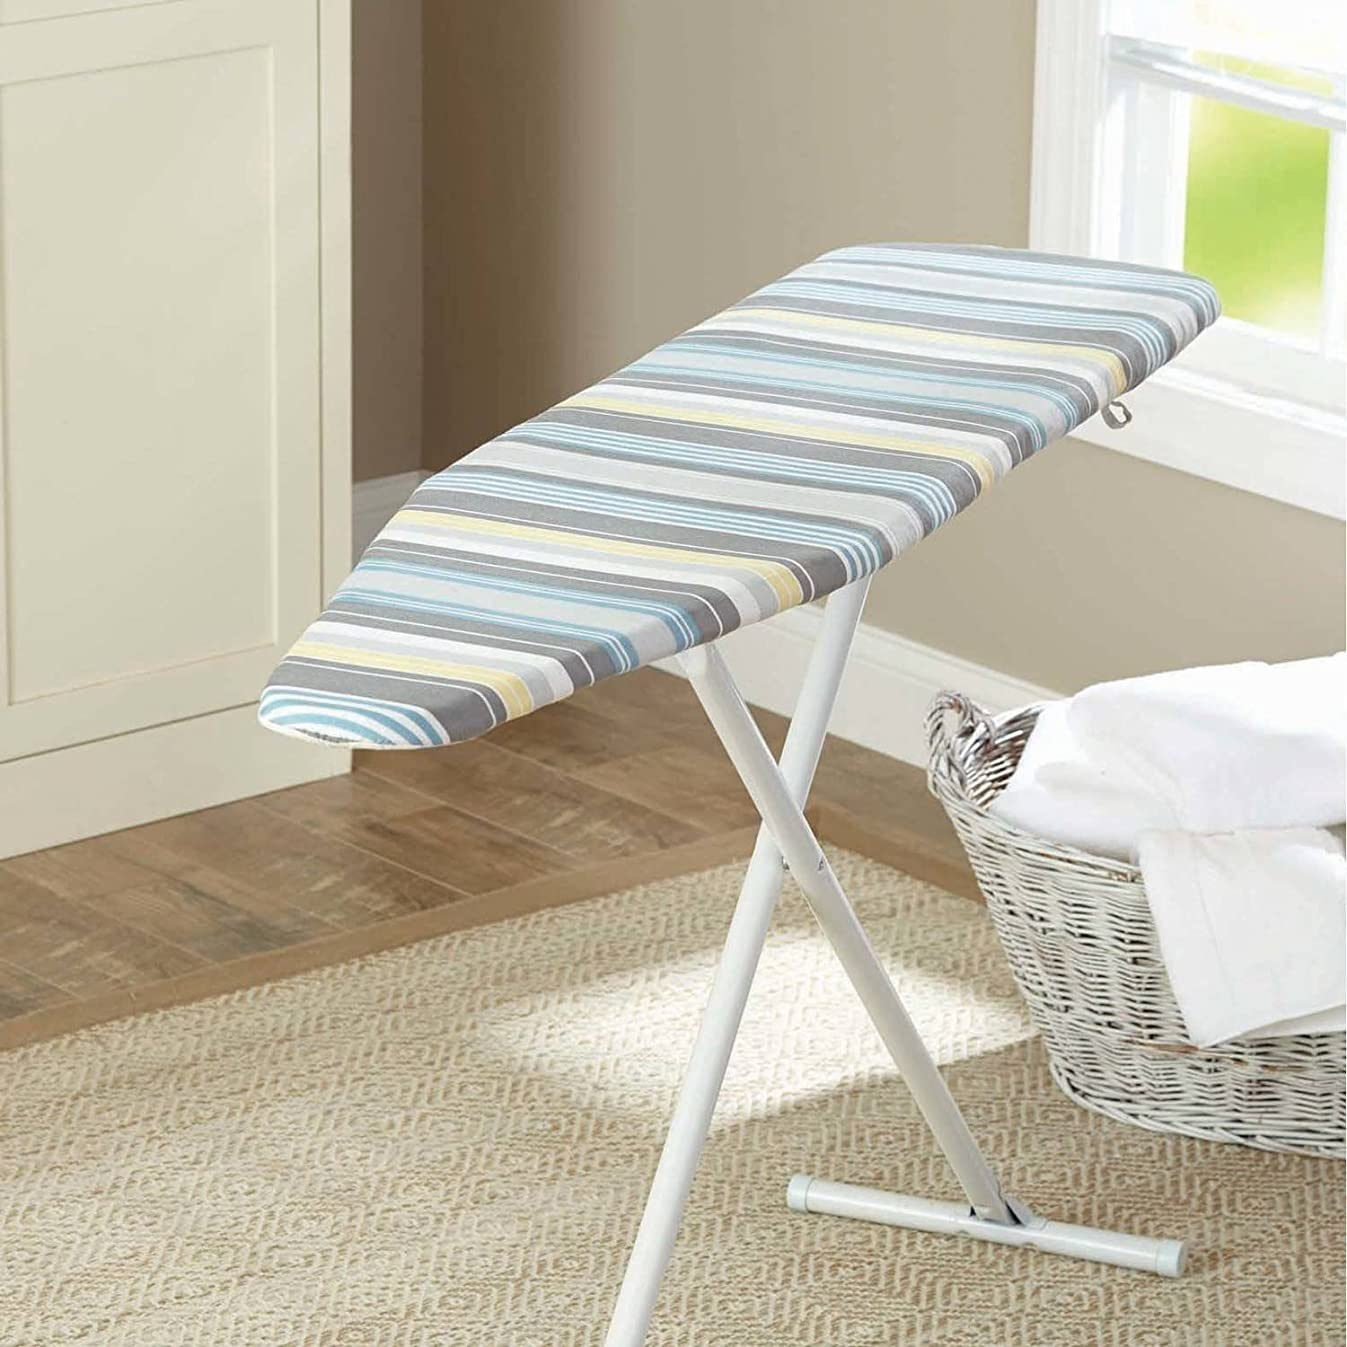 Reversible Ironing Board Pad and Cover, Casual Stripe